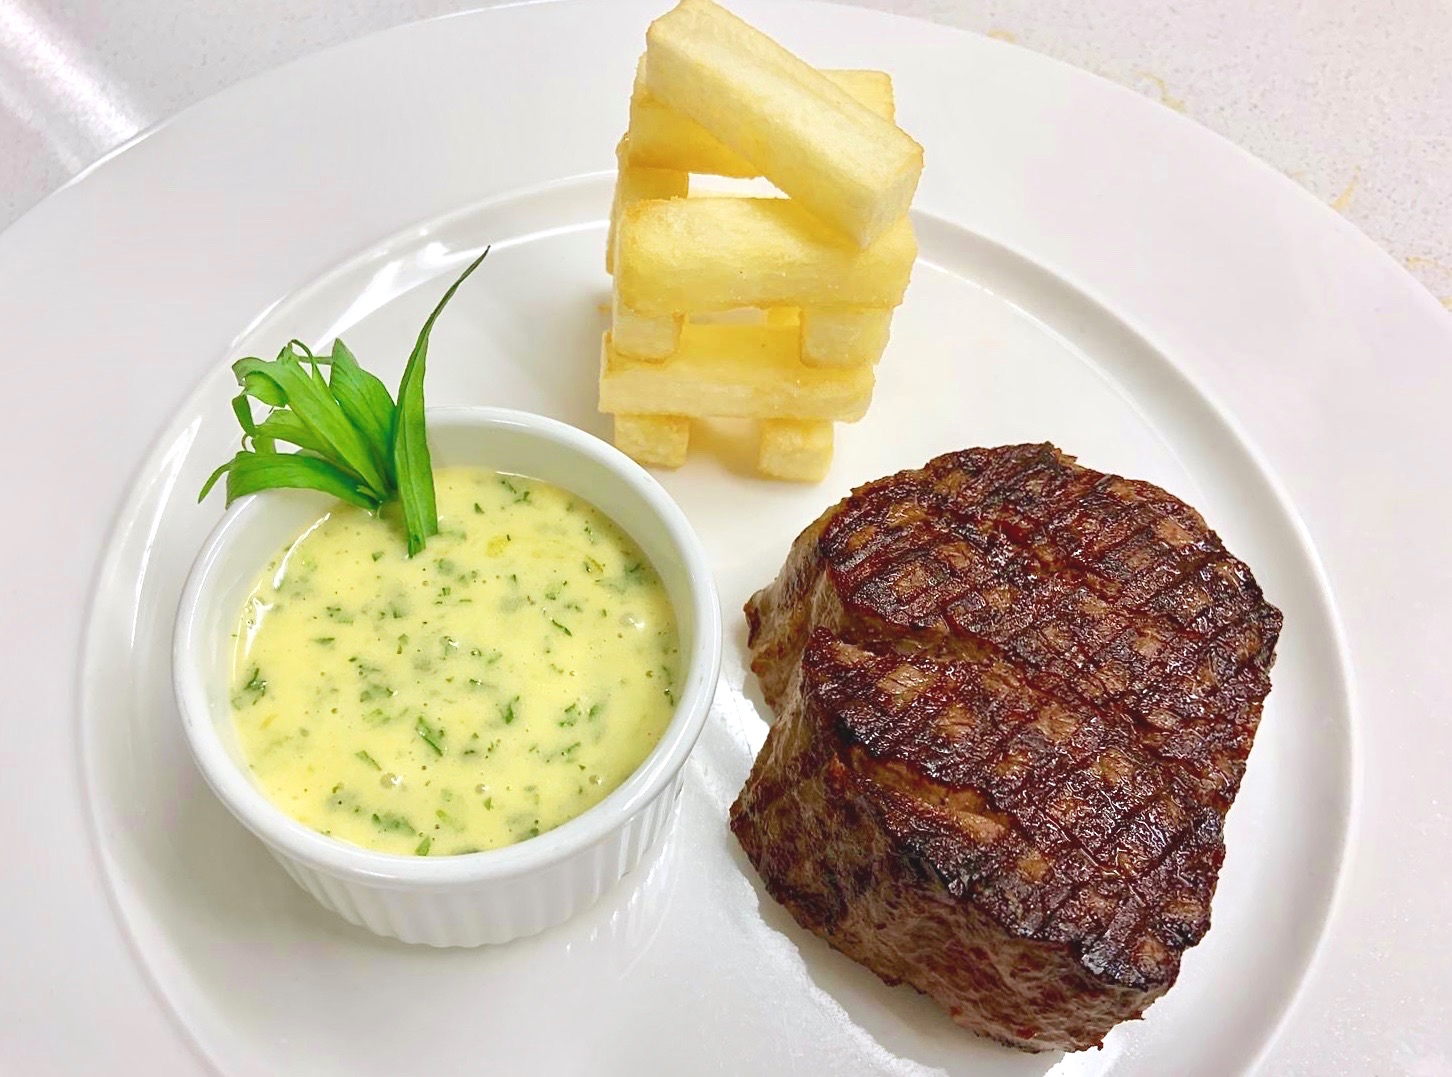 Fillet steak and chips with Béarnaise sauce